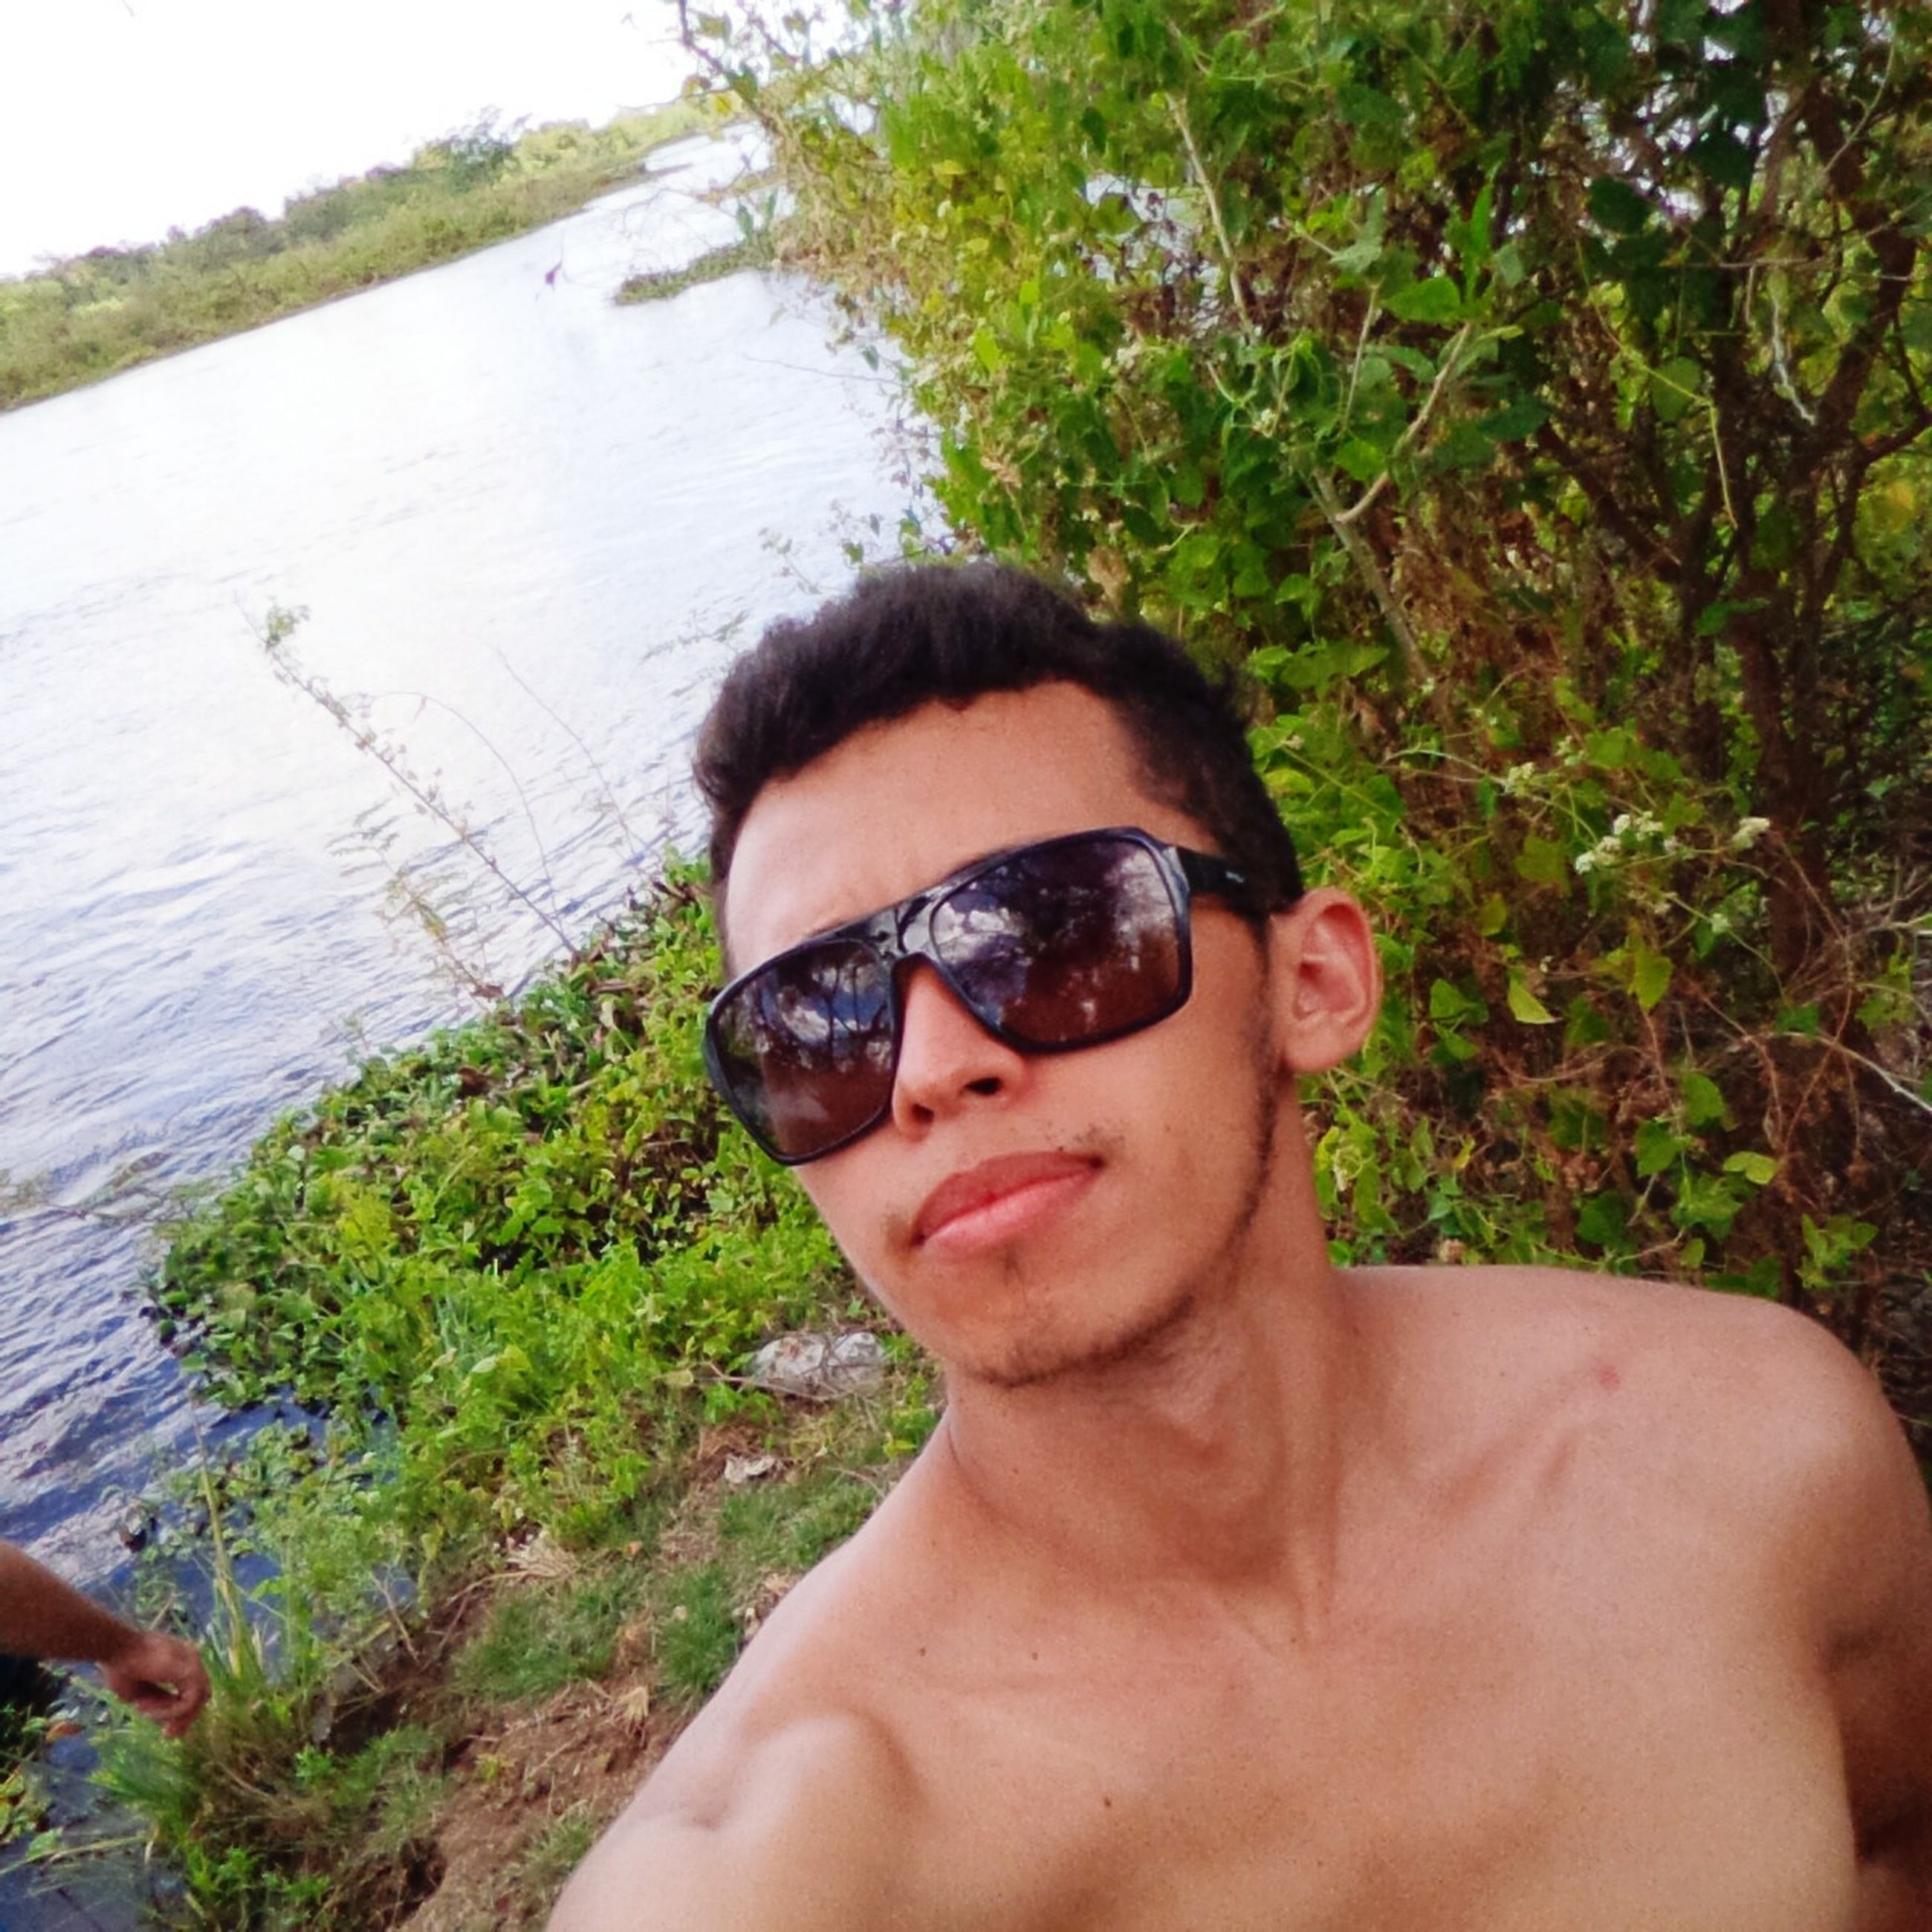 young adult, lifestyles, portrait, leisure activity, looking at camera, person, water, sunglasses, young men, headshot, front view, tree, vacations, lake, day, sunlight, nature